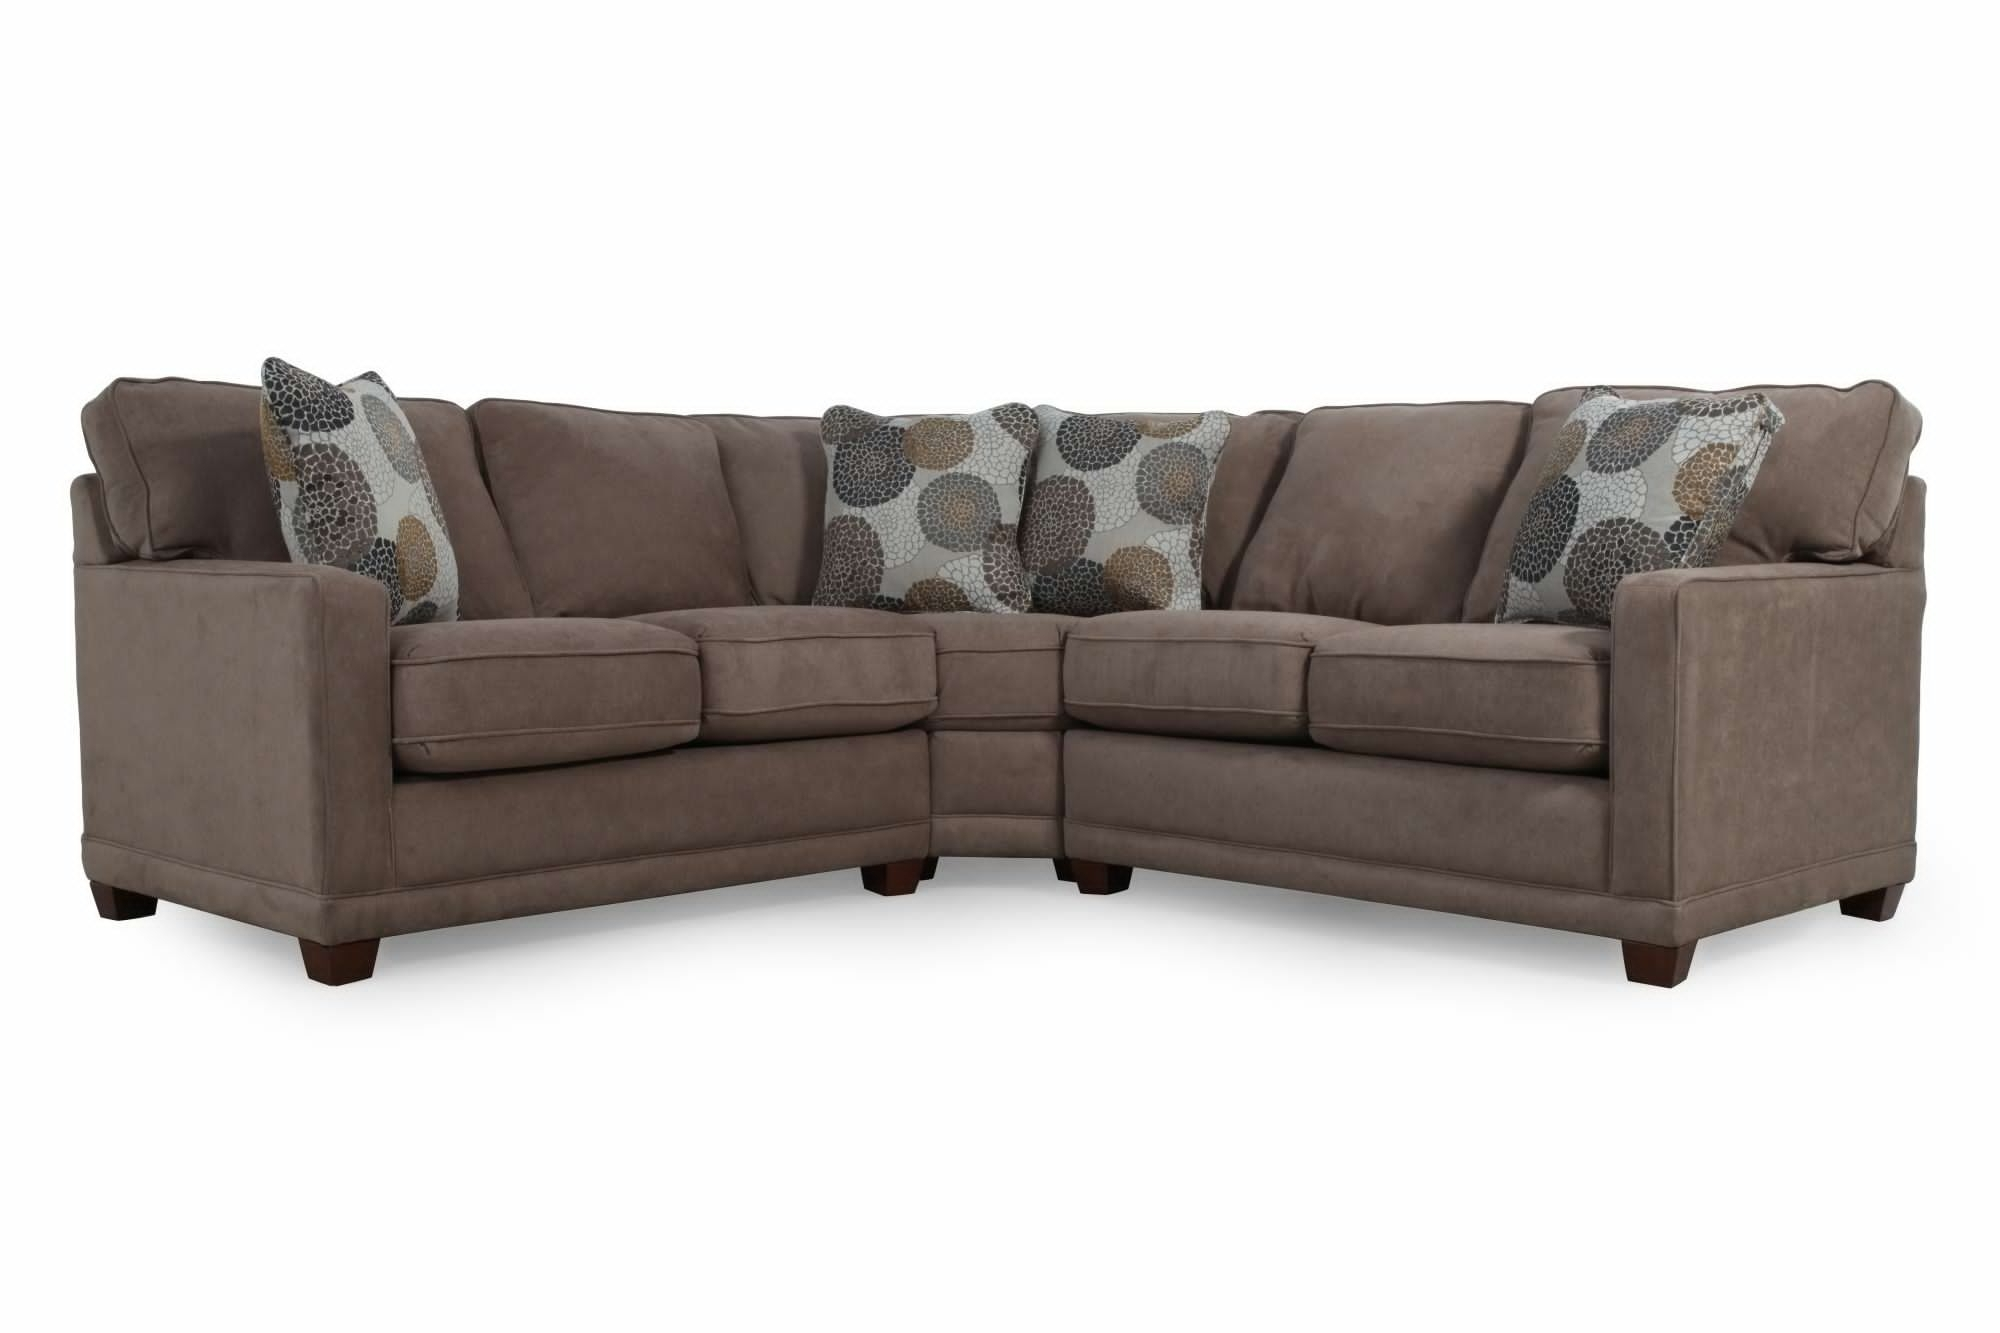 Sectional Sofas At Lazy Boy With Newest Sectional Sofa Design: Lazy Boy Sectional Sofa Sale James (View 15 of 15)